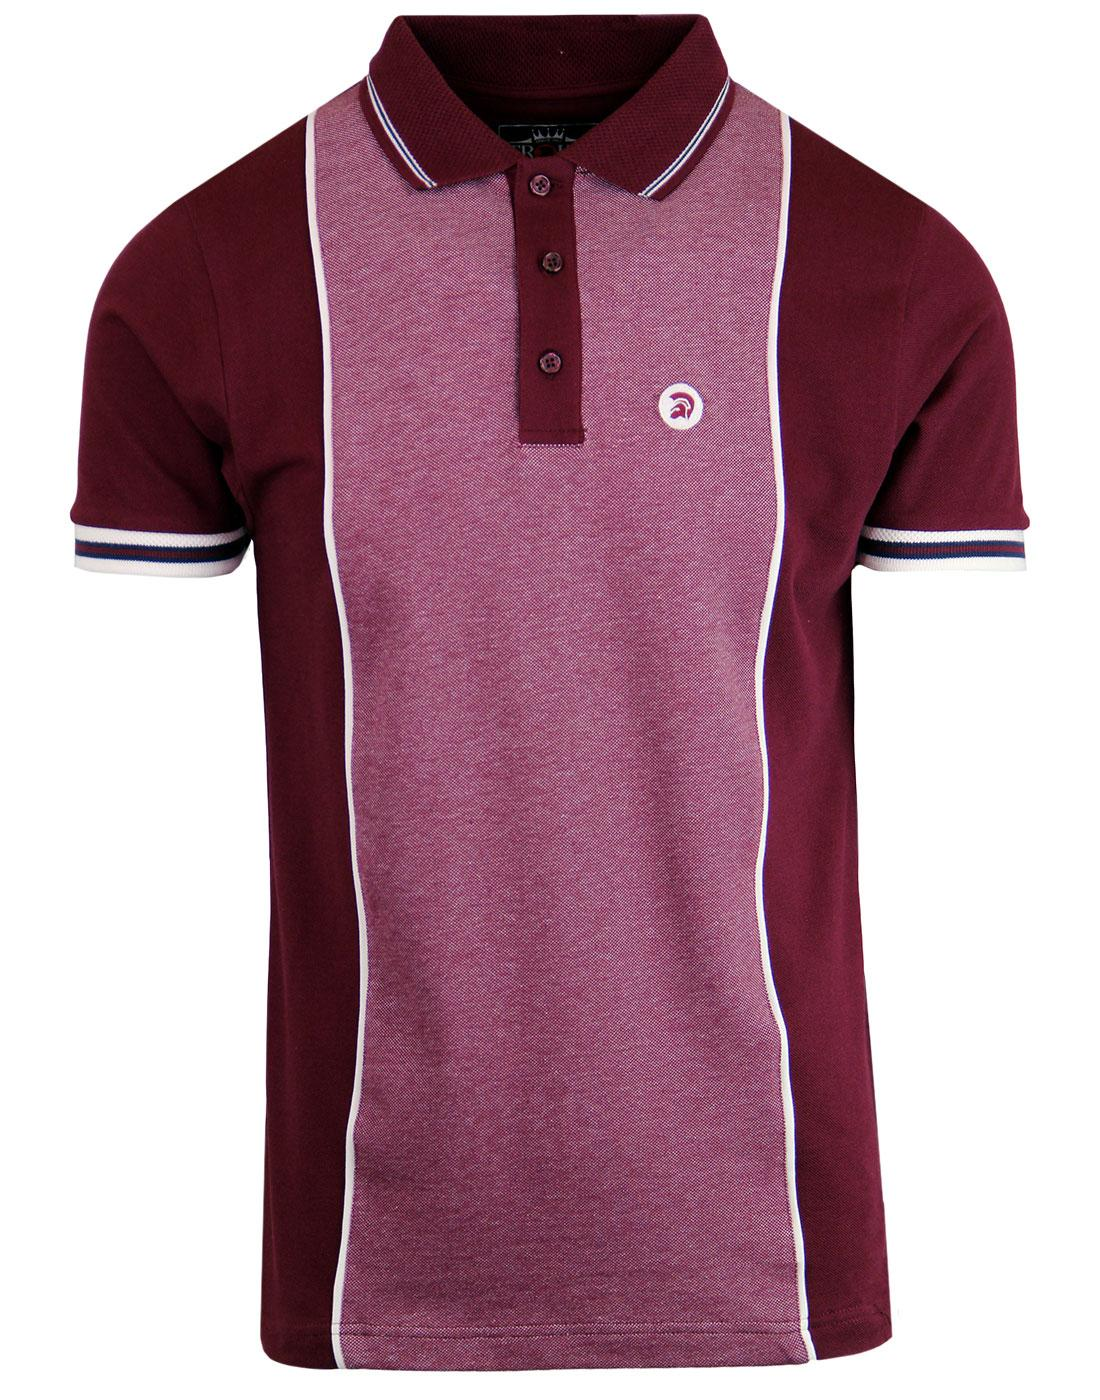 TROJAN RECORDS Retro Mod Oxford Panel Polo Top (M)